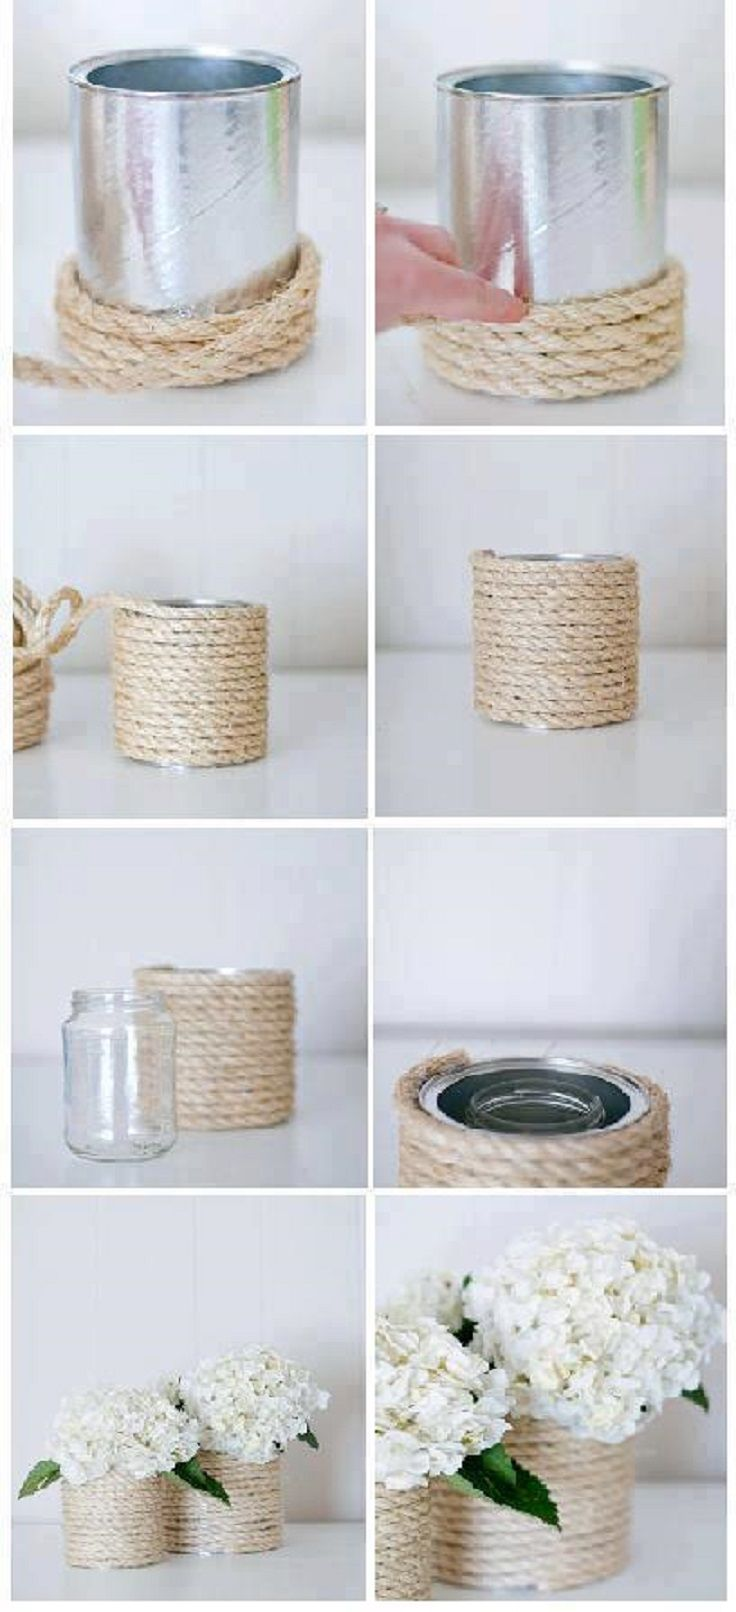 Top 10 Simple DIY Recycling Vase Projects